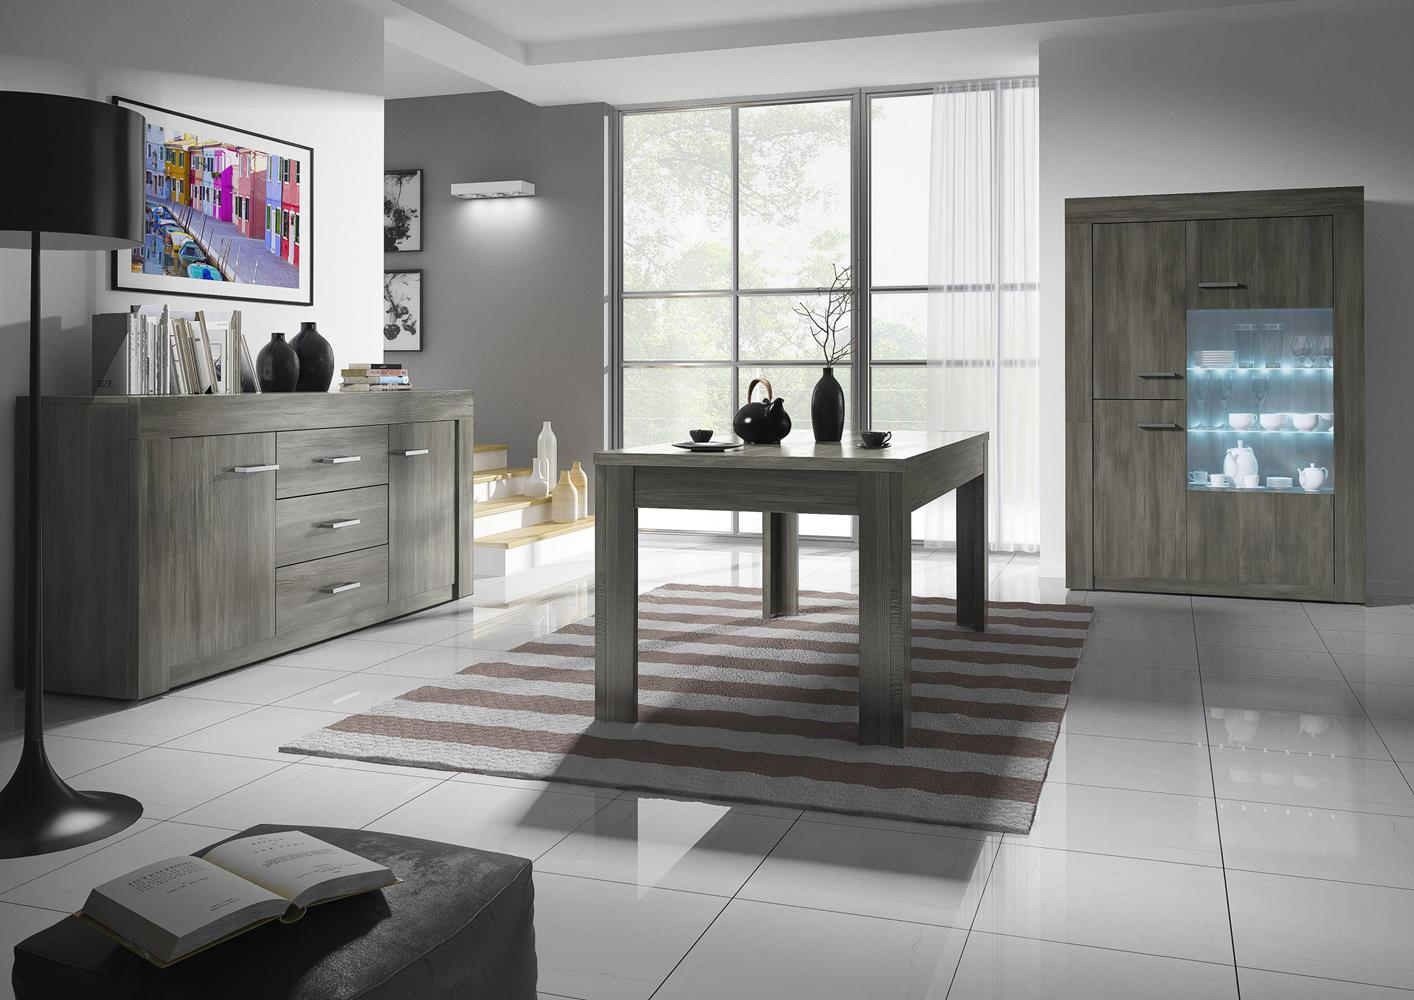 acheter votre vitrine avec led m lamin ch ne gris fonc chez simeuble. Black Bedroom Furniture Sets. Home Design Ideas